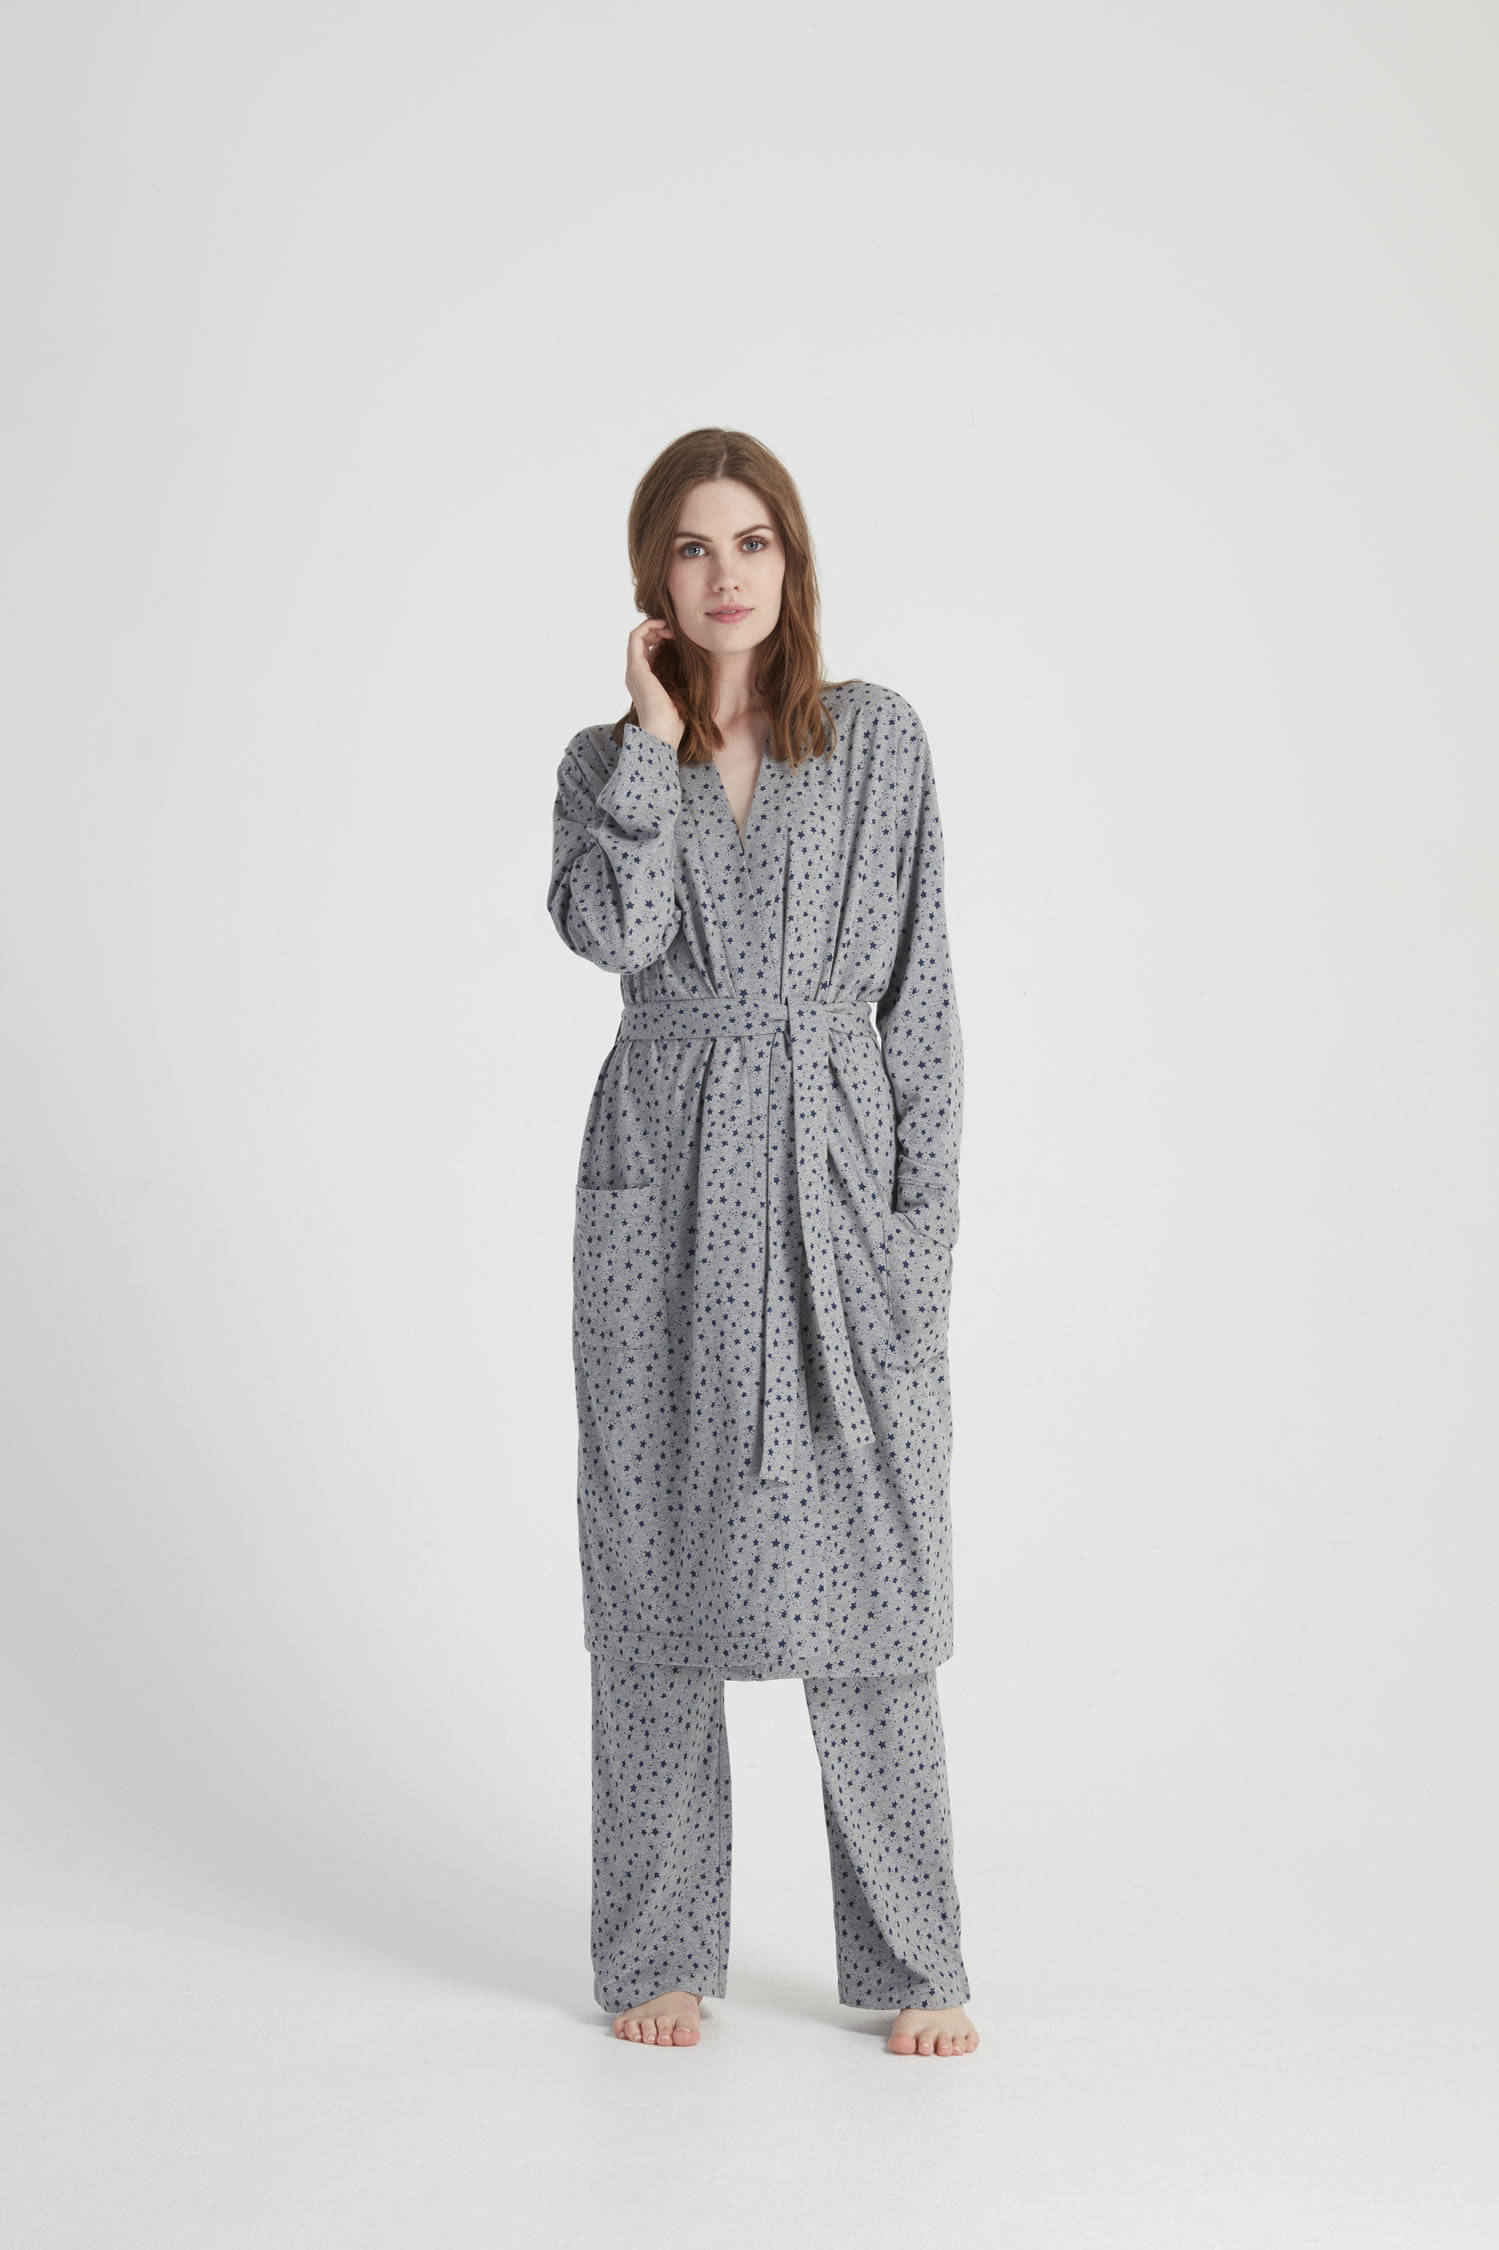 9 Sustainable Sleepwear Brands for Your Ethical Wardrobe - Eco ...